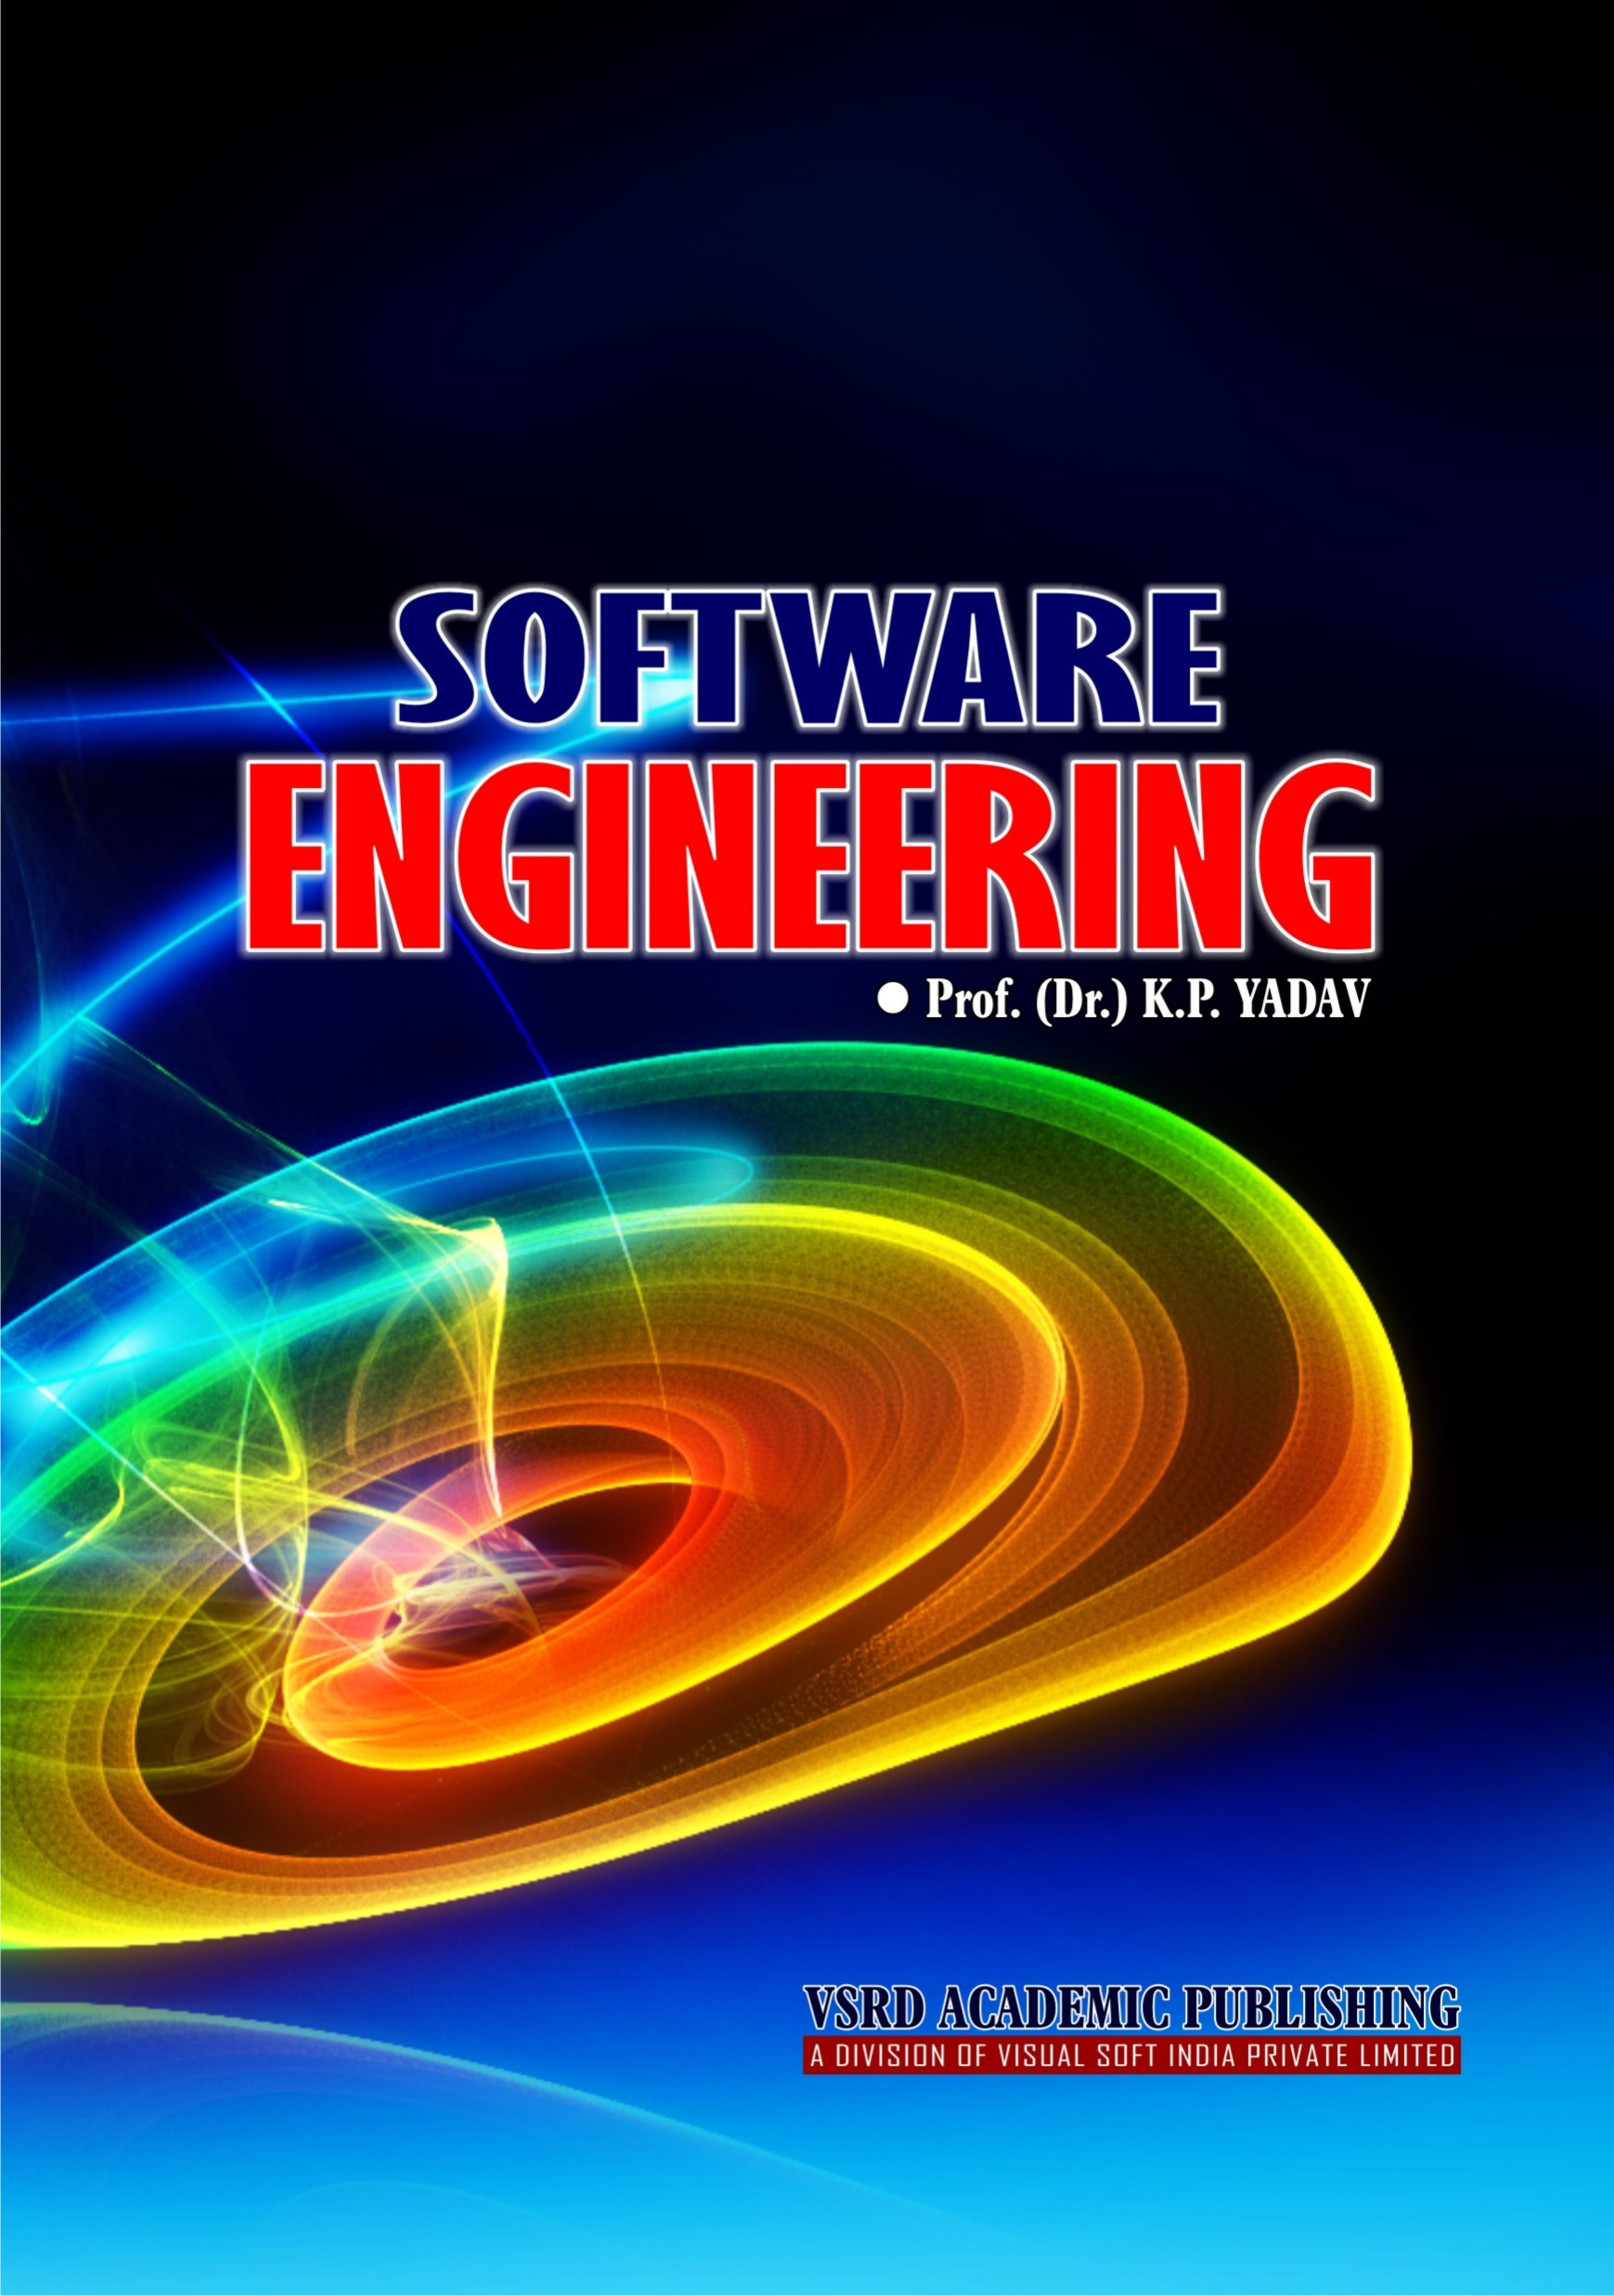 software engineering master thesis projects The master's thesis is a part of the student's major subject studies it is an   software engineering and digital transformation: professor ajantha dahanayake .